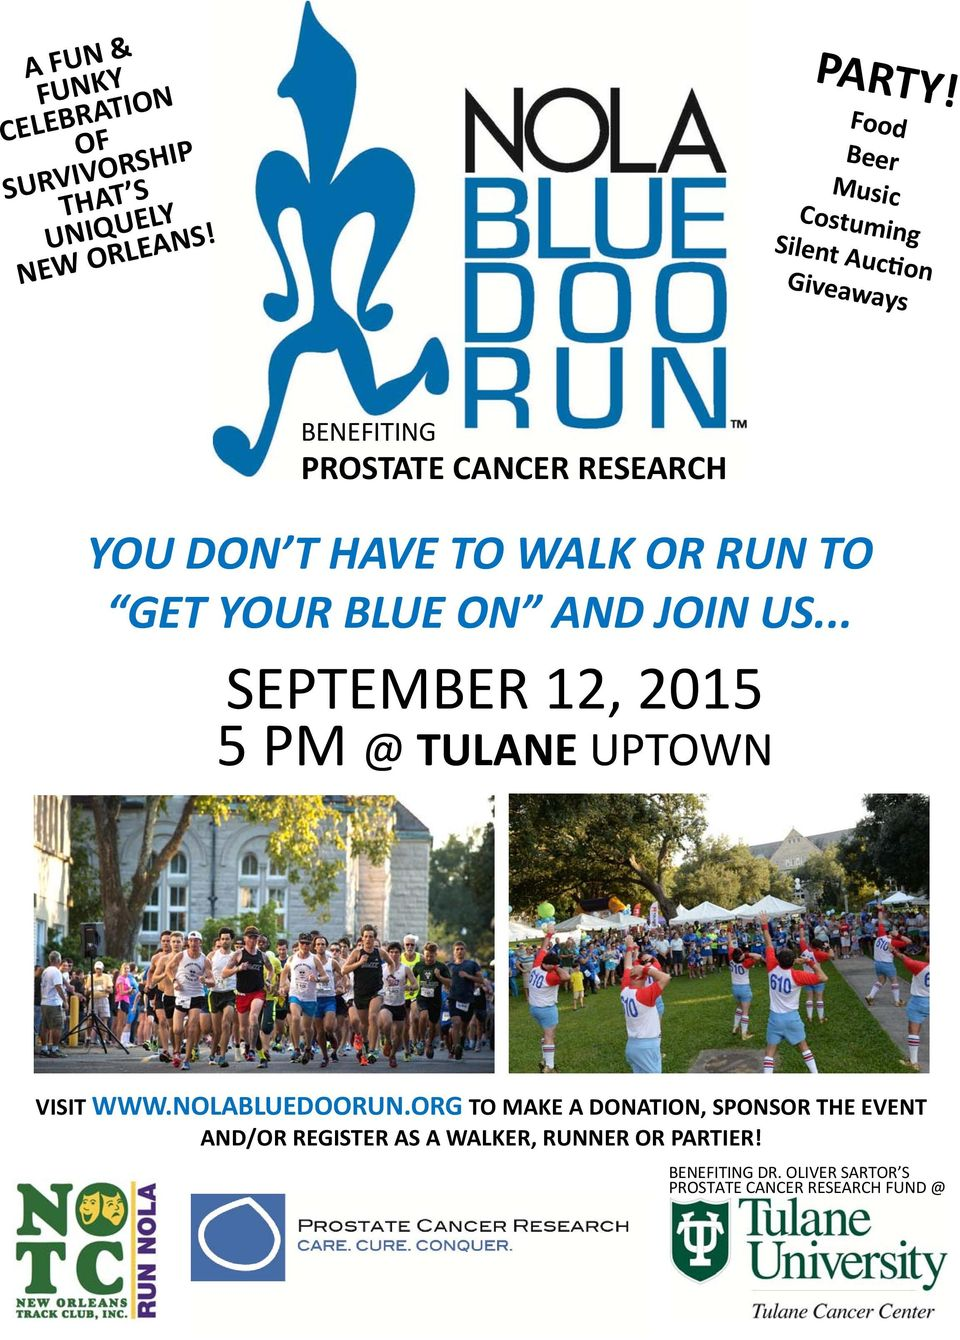 RUN TO GET YOUR BLUE ON AND JOIN US... SEPTEMBER 12, 2015 5 PM @ TULANE UPTOWN VISIT WWW.NOLABLUEDOORUN.